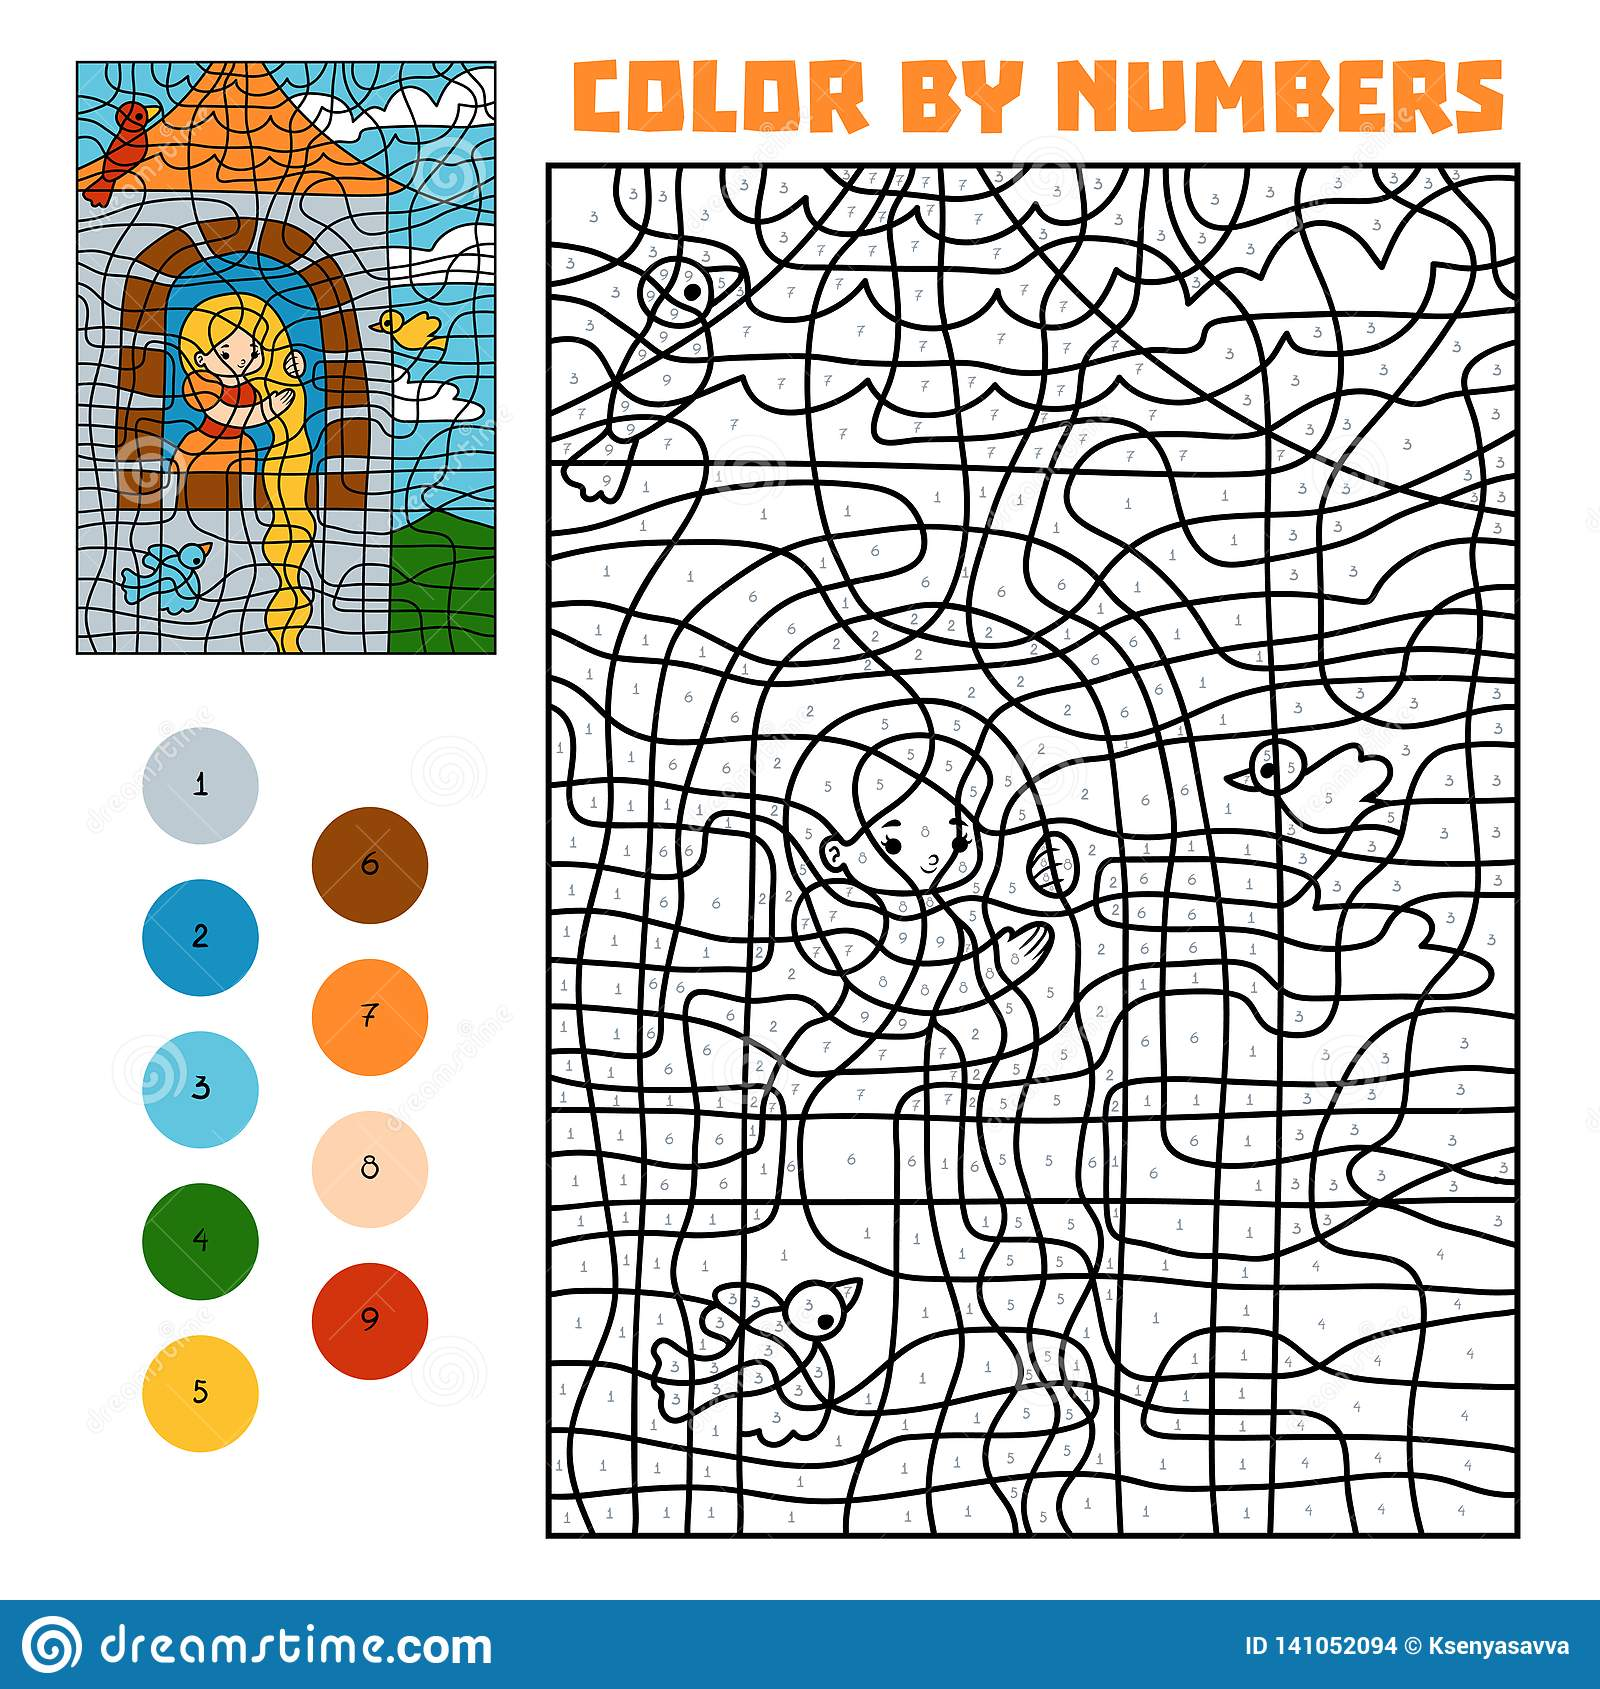 Color by number. Fairy tales. Rapunzel in the tower